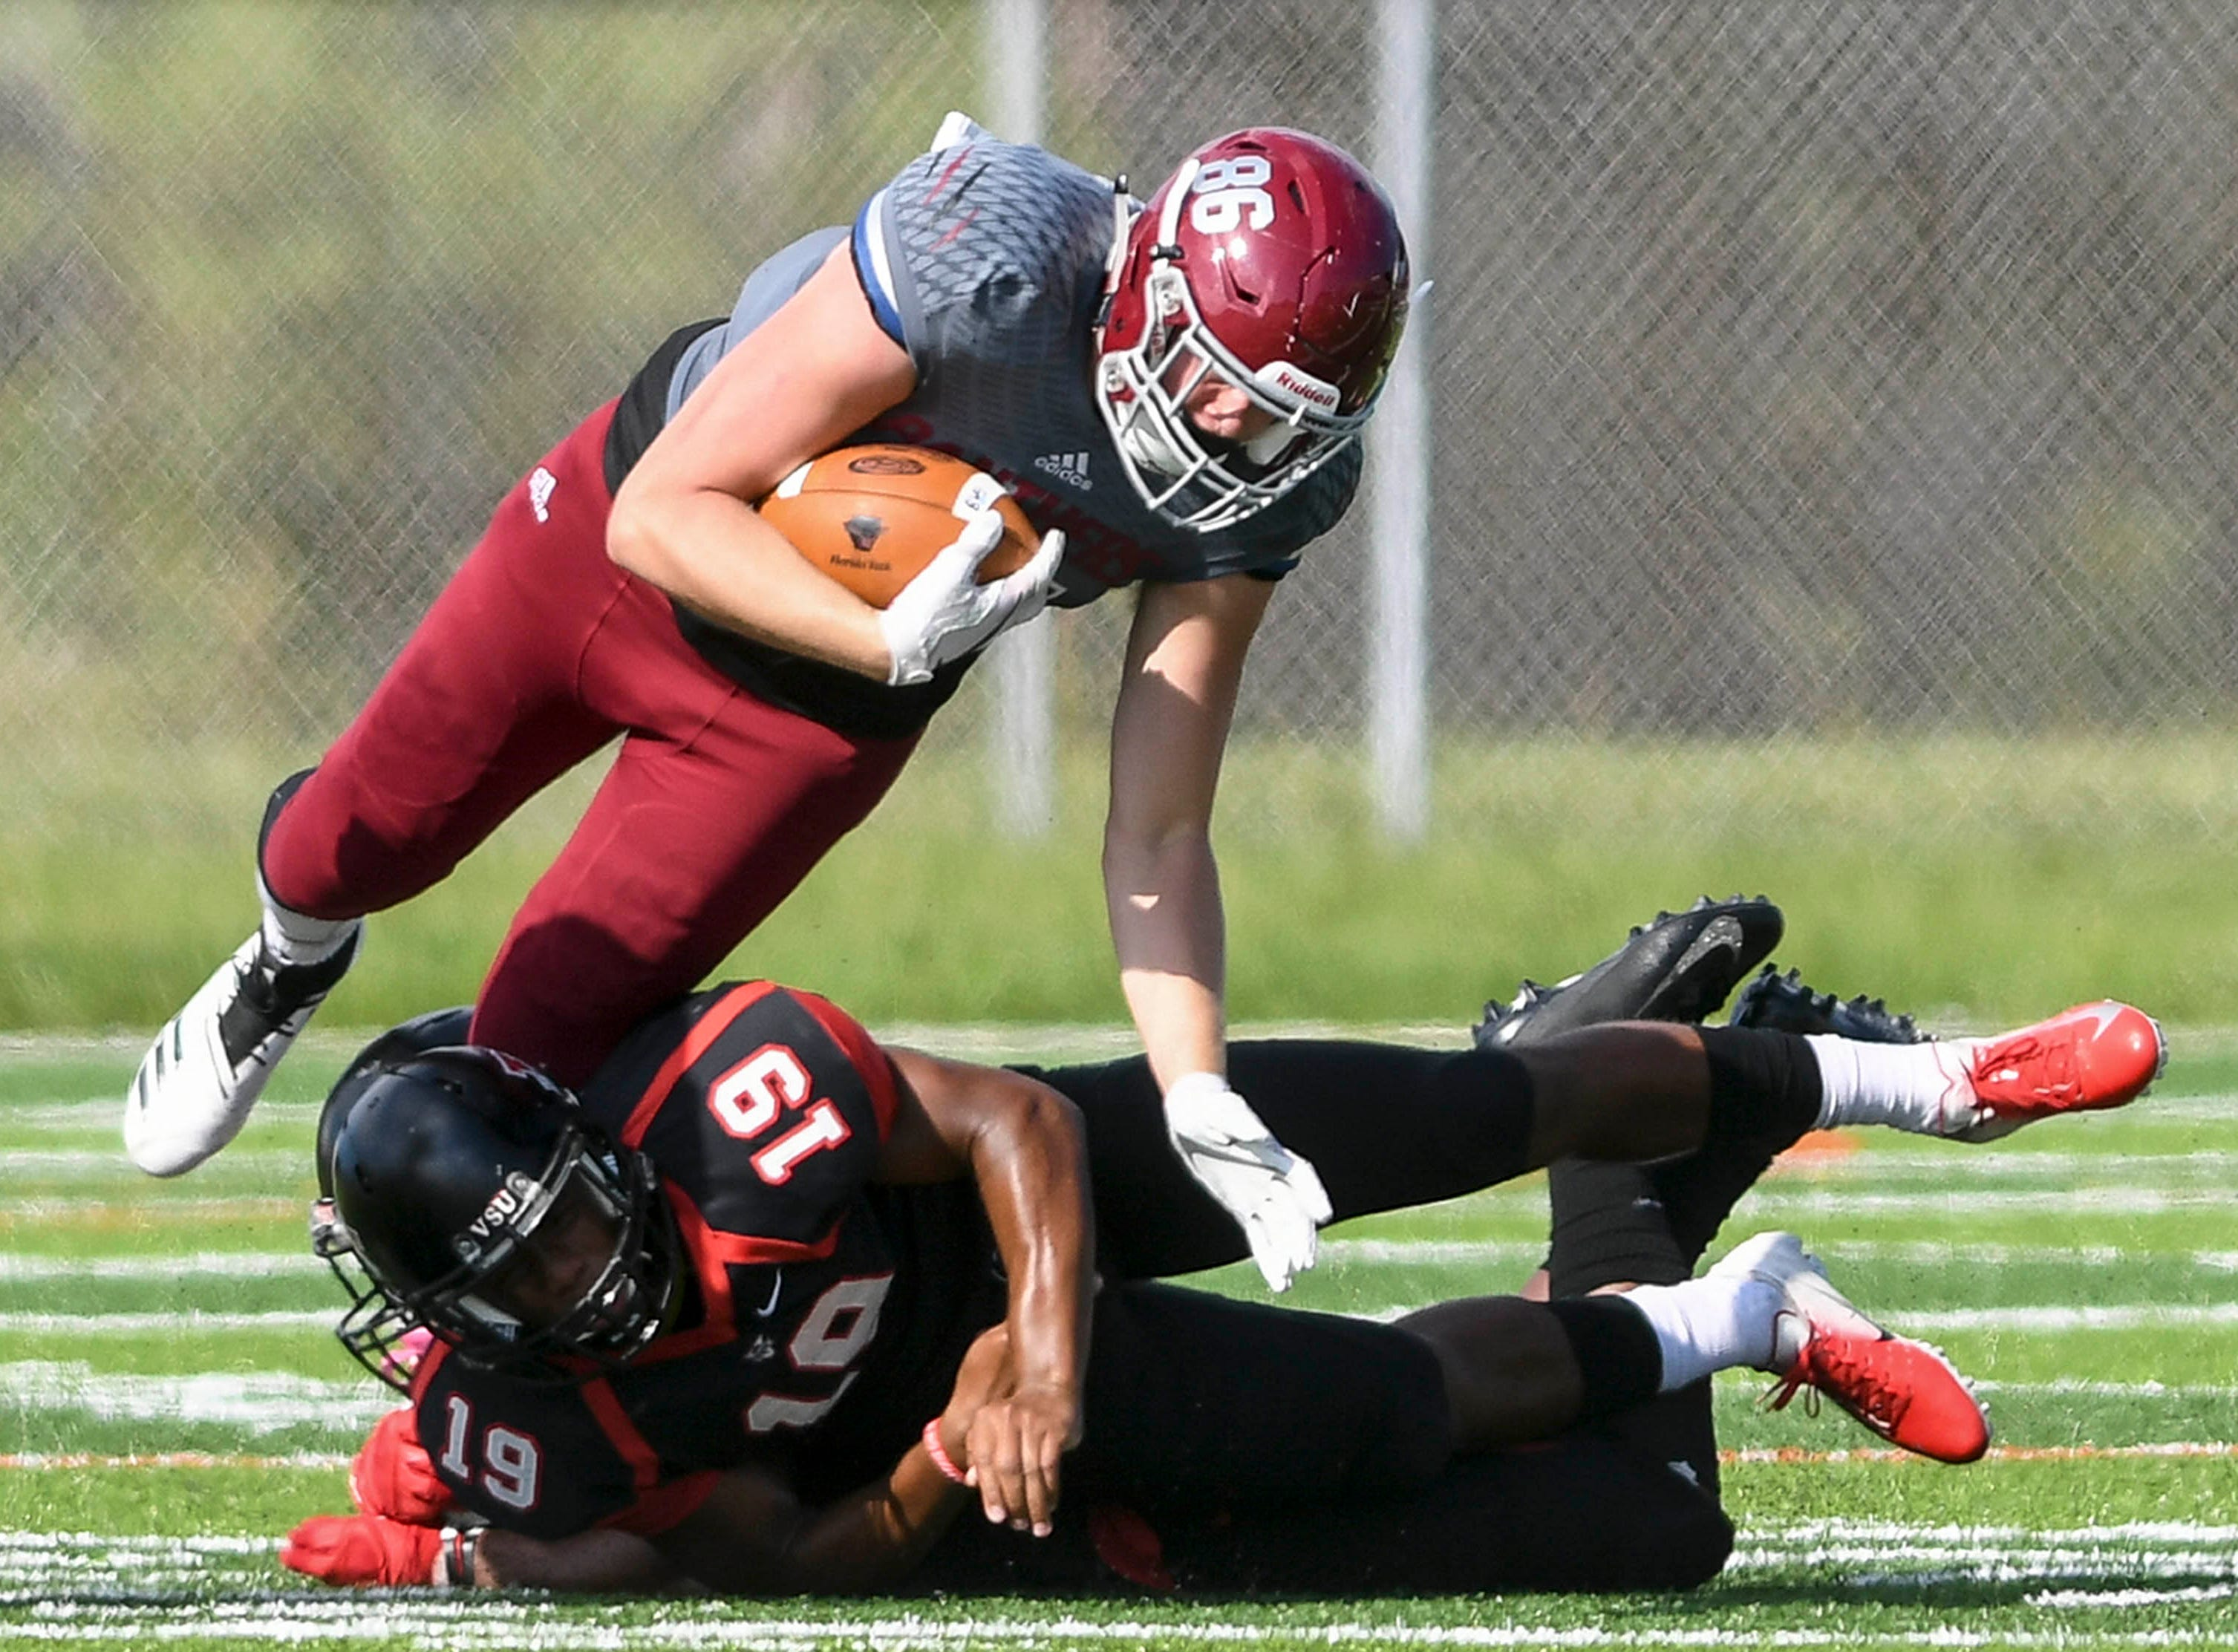 Kenny Hiteman of Florida Tech is taken down by Cory Roberts of Valdosta State during Saturday's game.